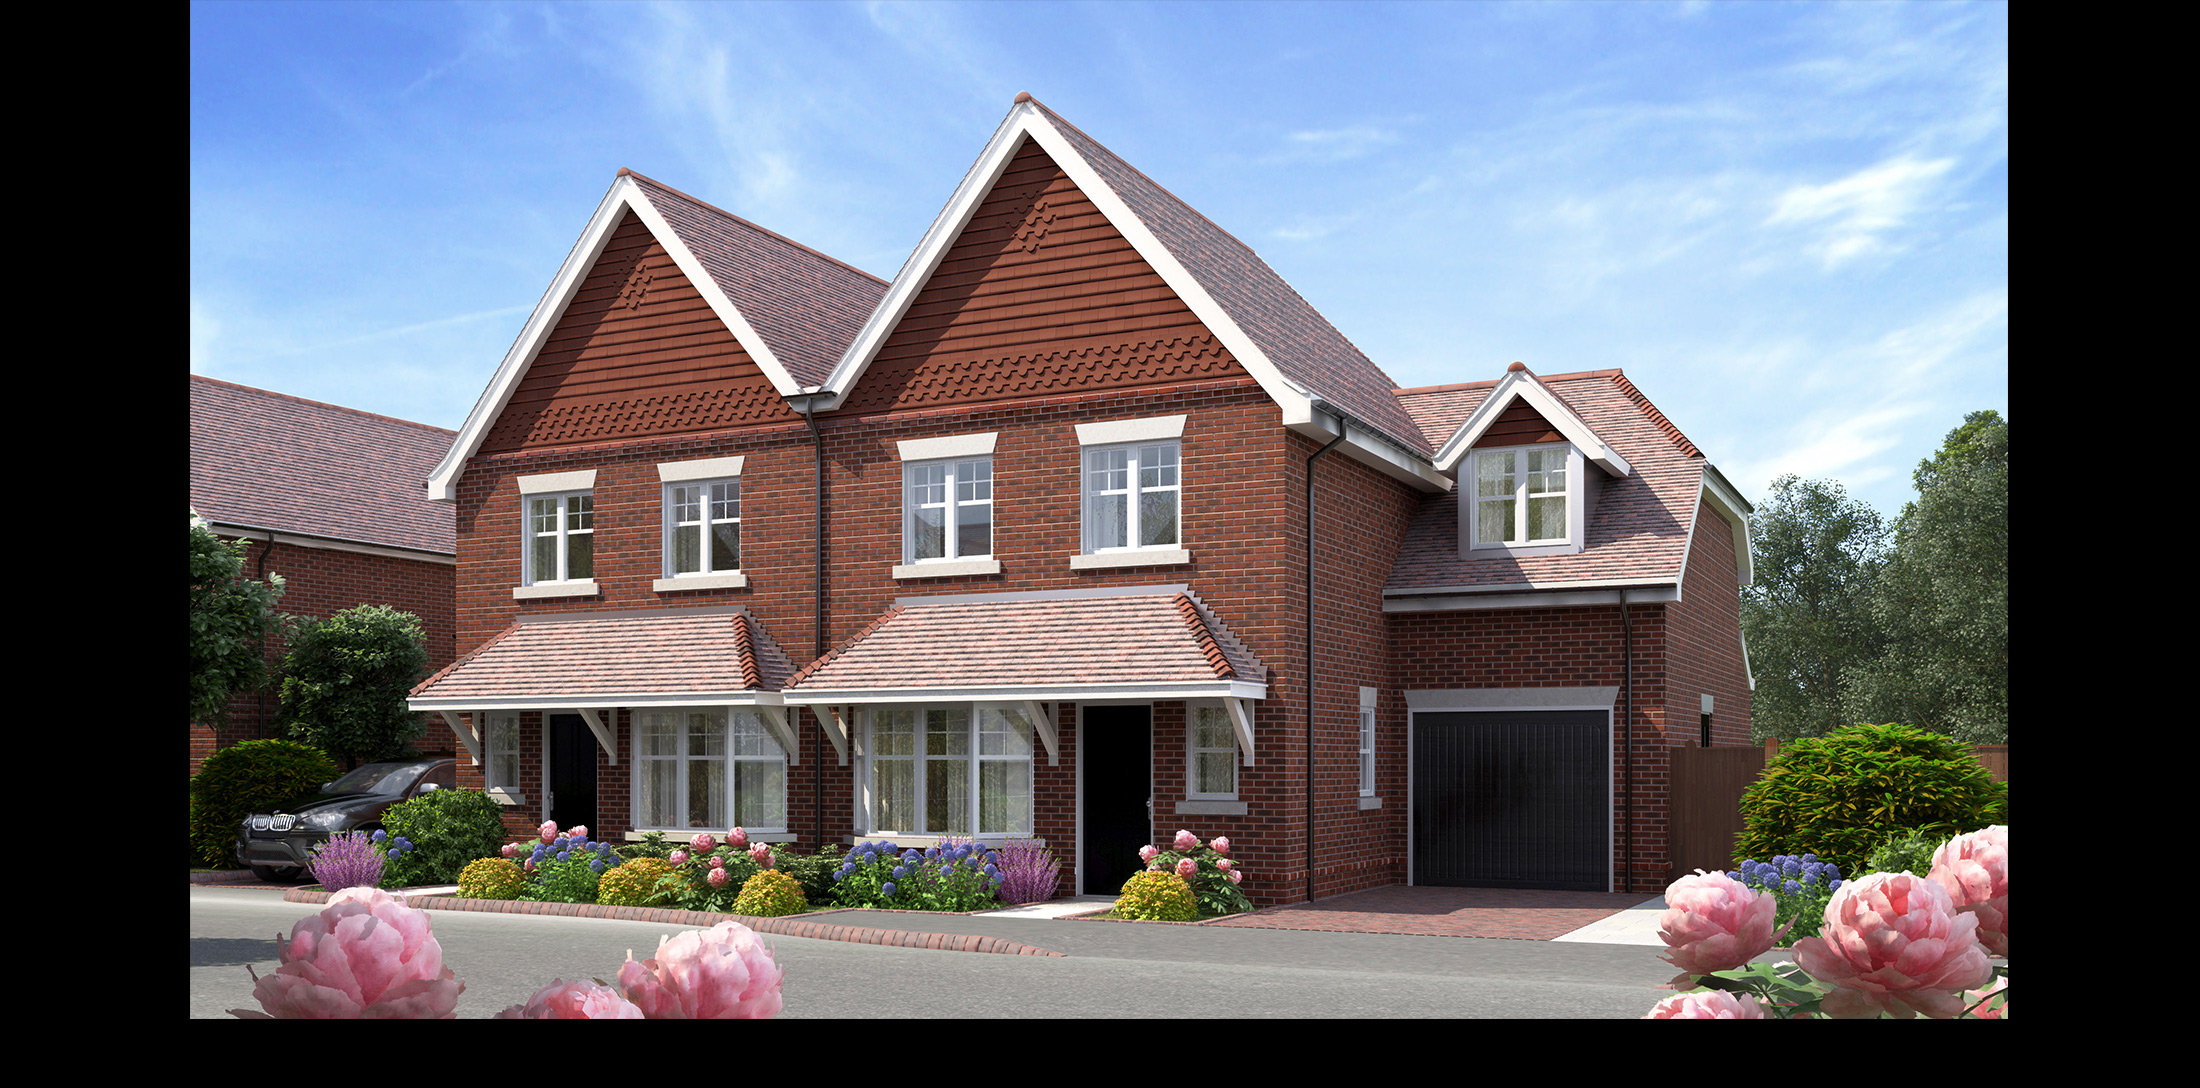 Alder grove concept developments for New concept homes